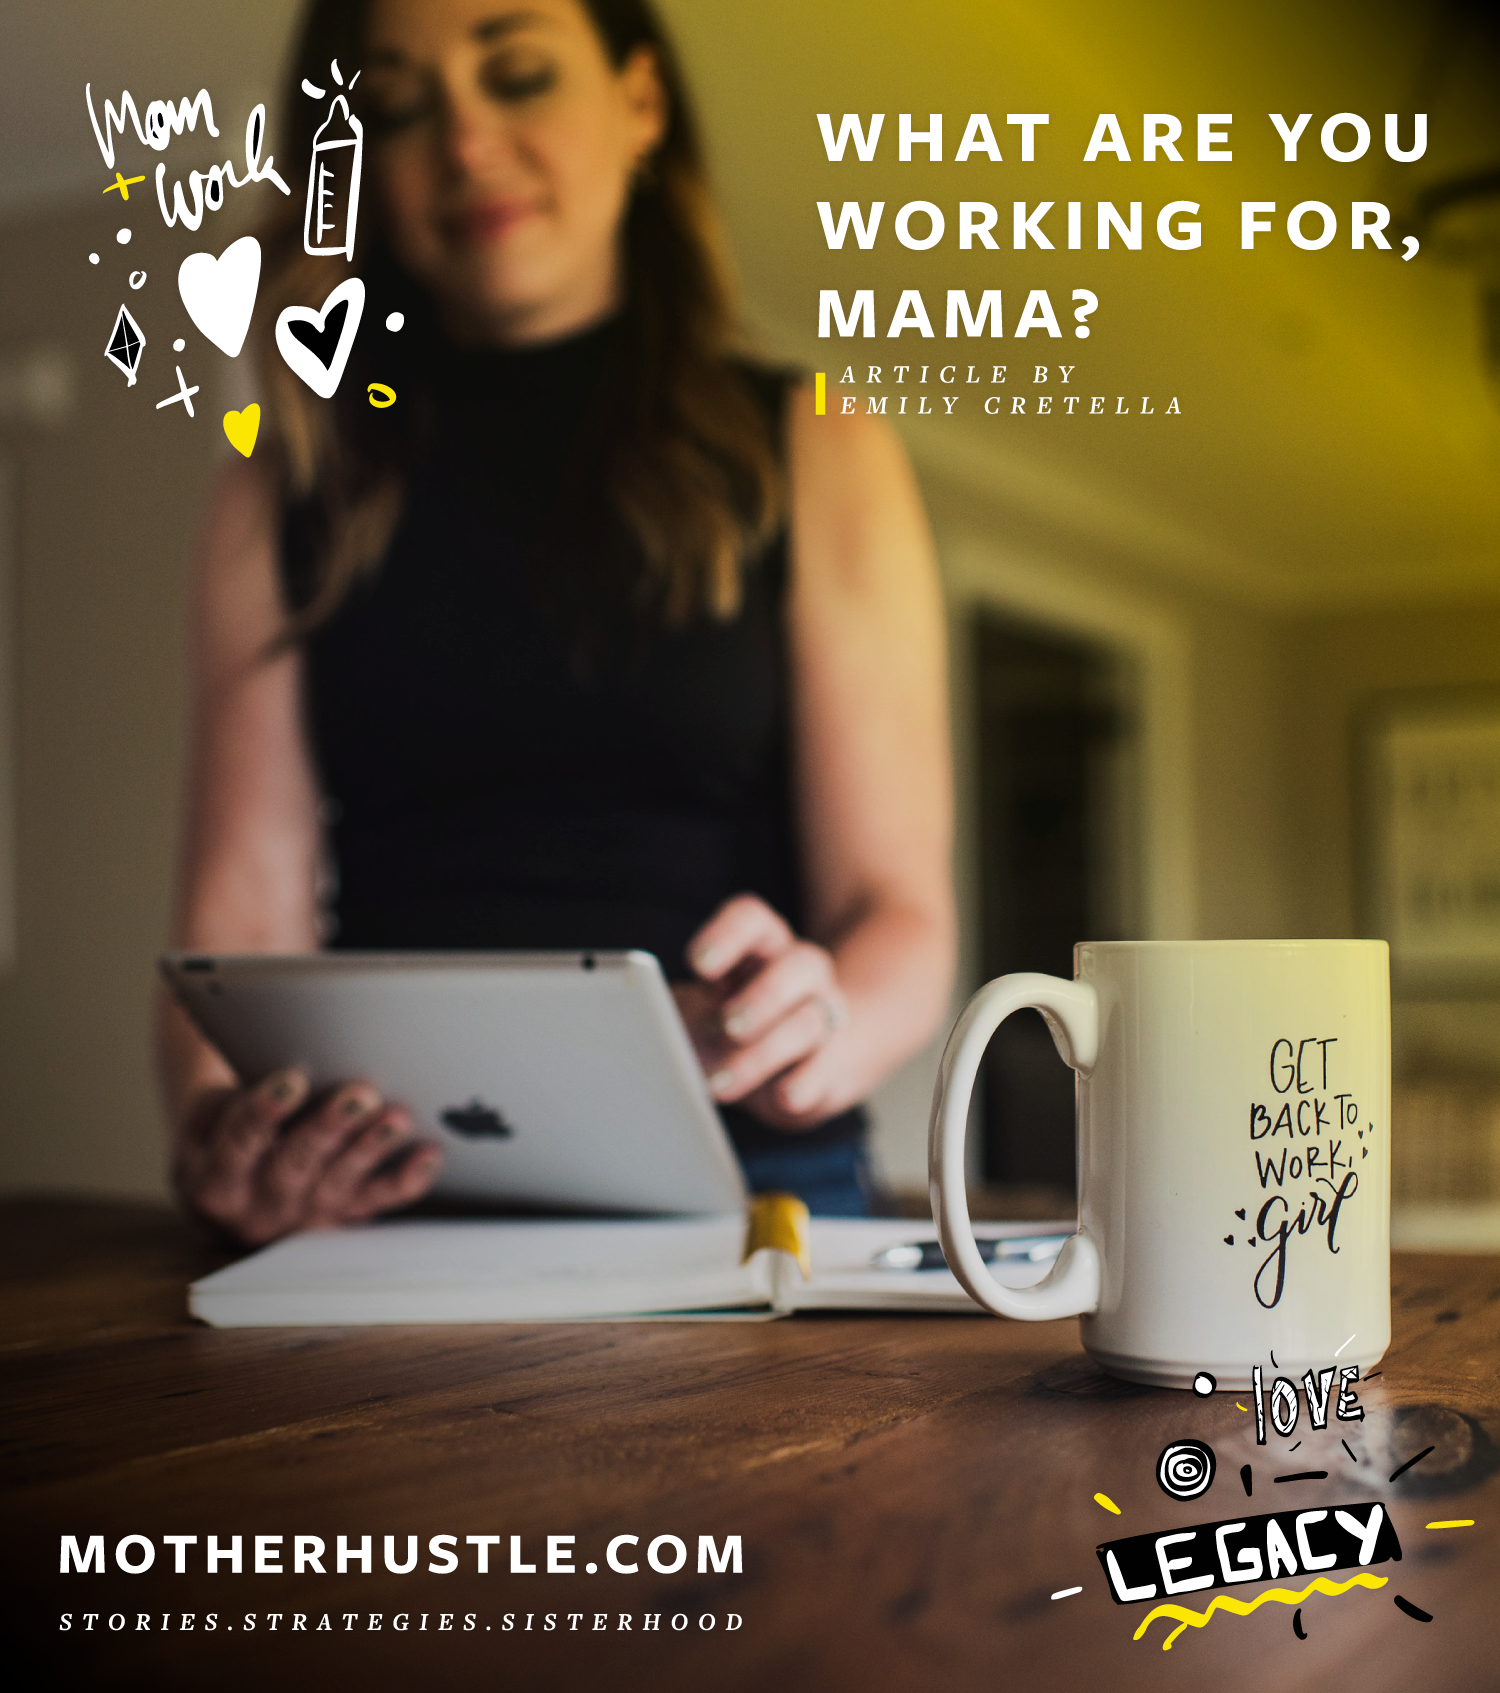 Ambition - What Are You Working for, Mama?